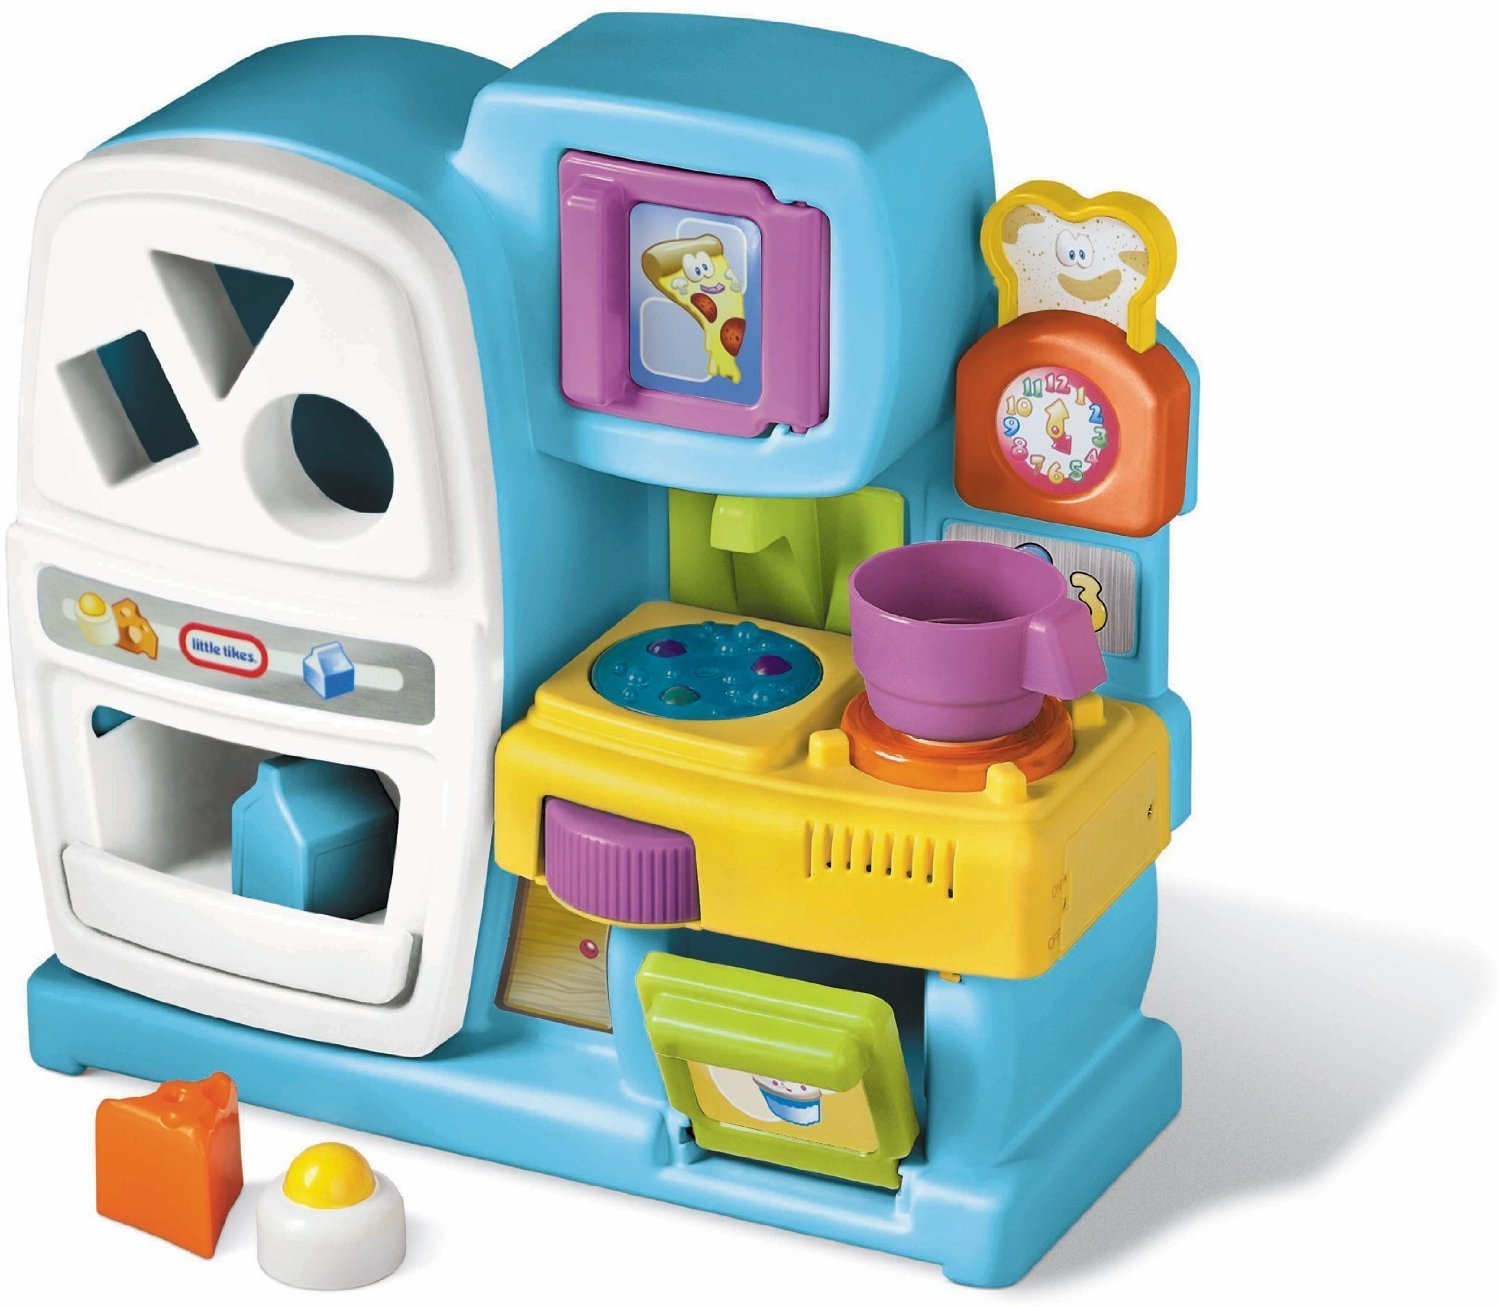 Little Tikes Discover Sounds Kitchen Only $19.49! (Reg